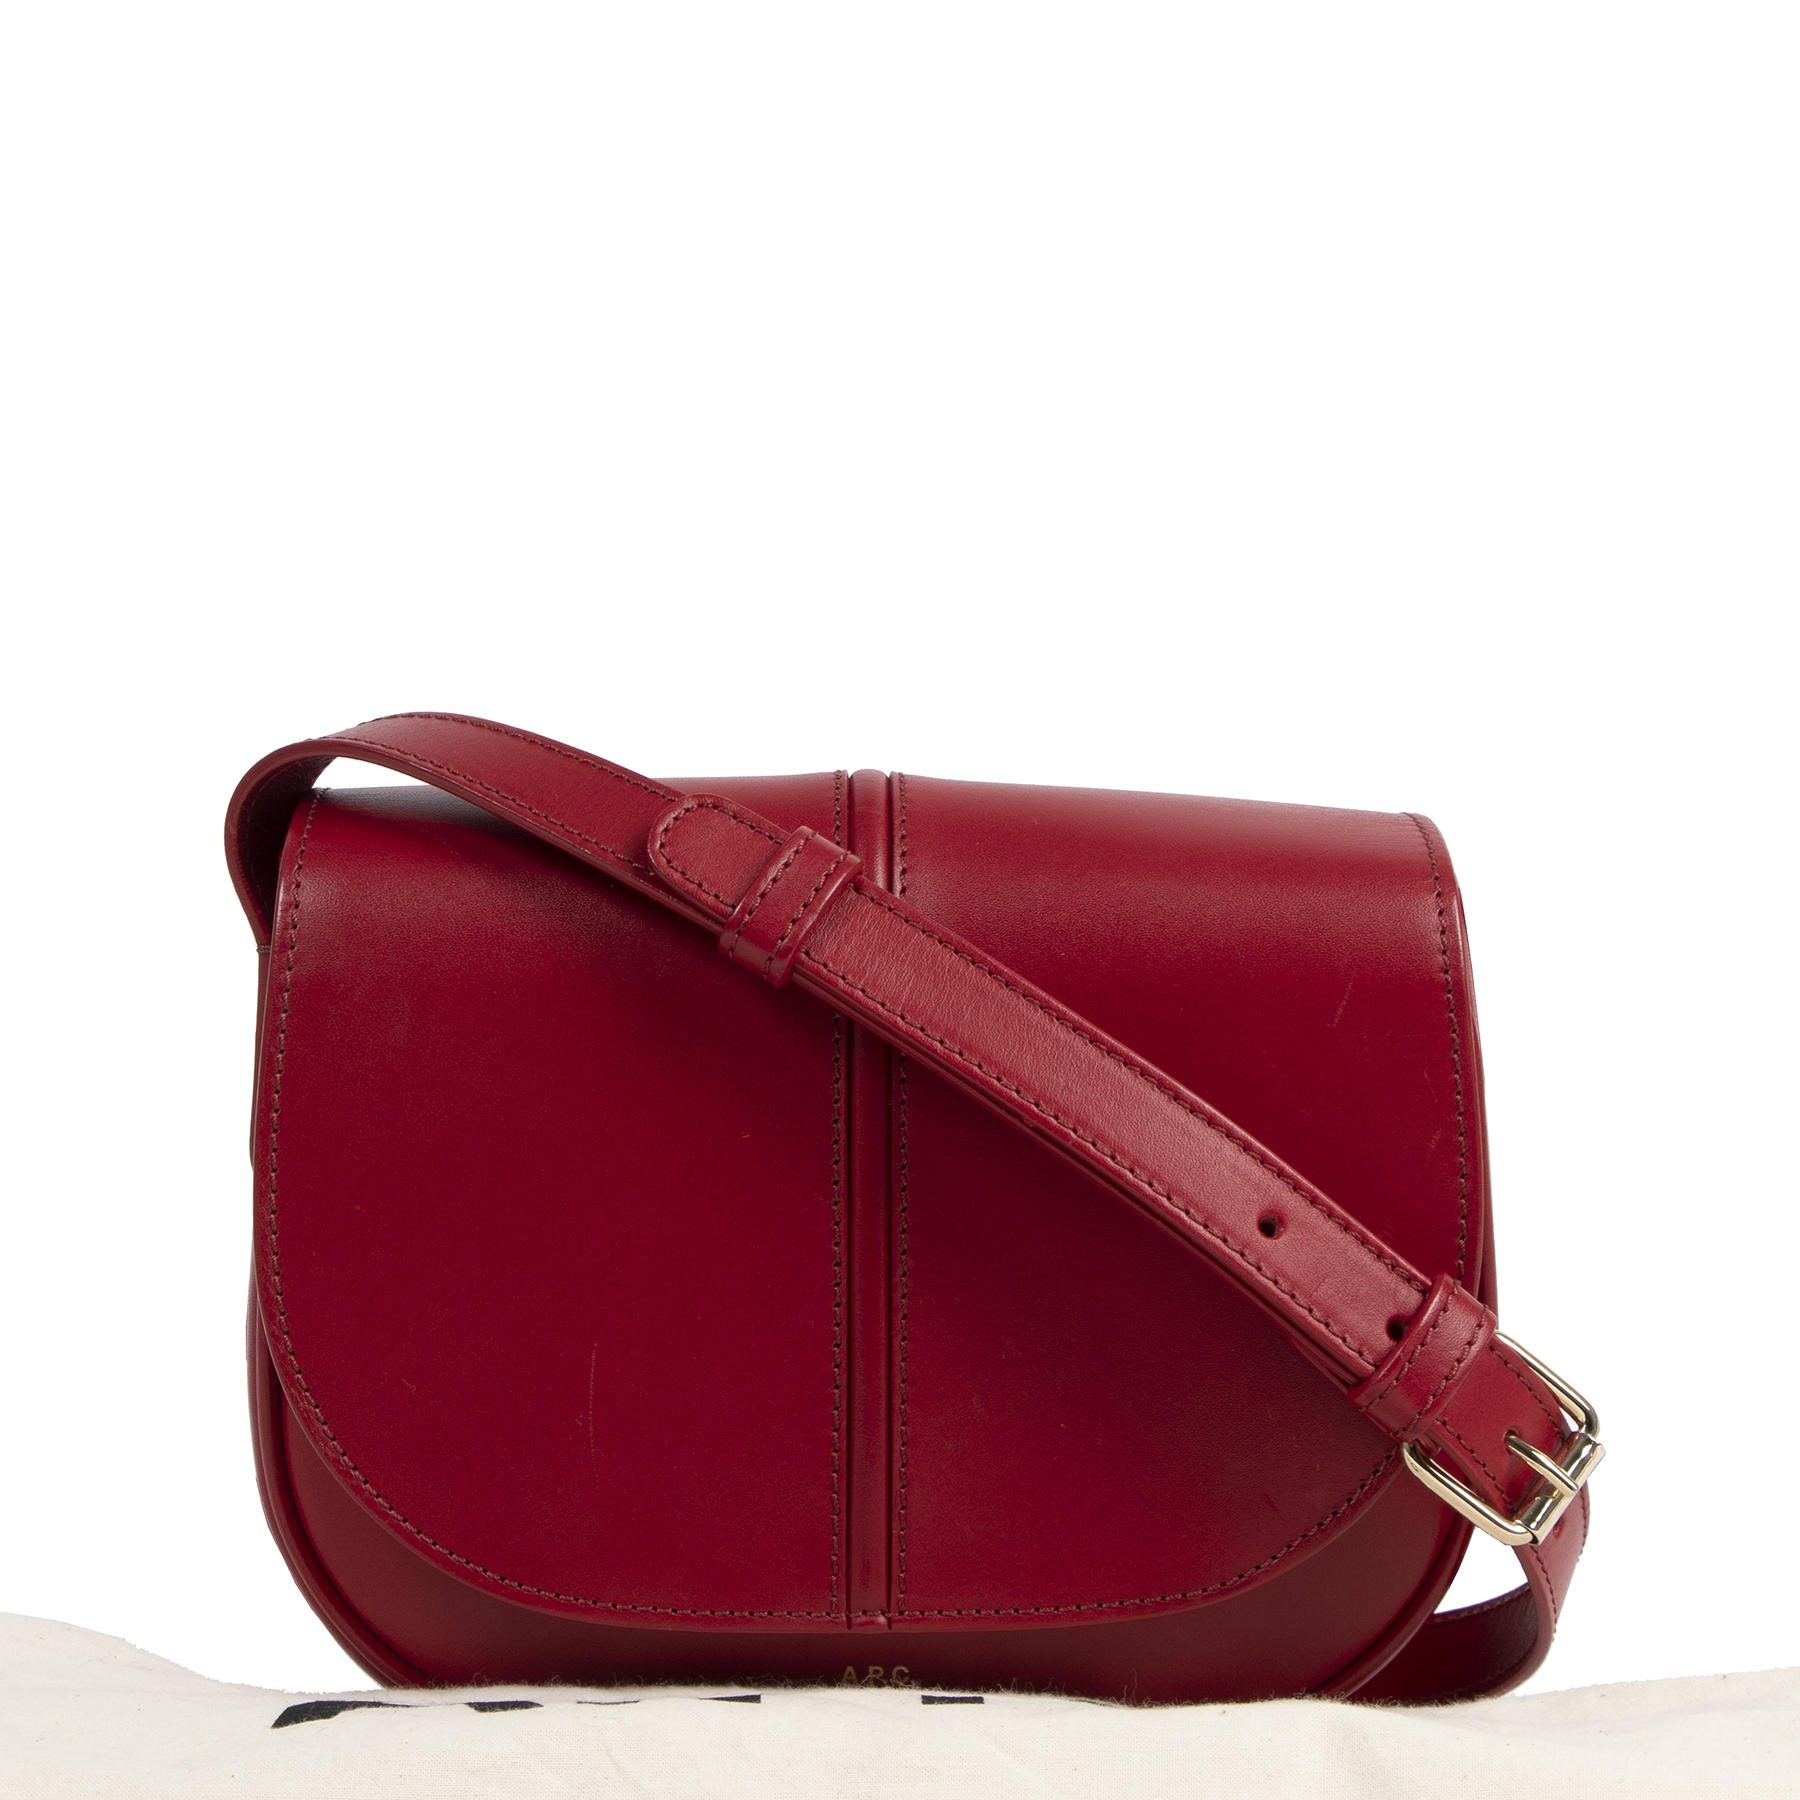 A.P.C. Betty Red Leather Crossbody Bag for sale only at Labellov Verlatstraat 15 2000 Antwerp.